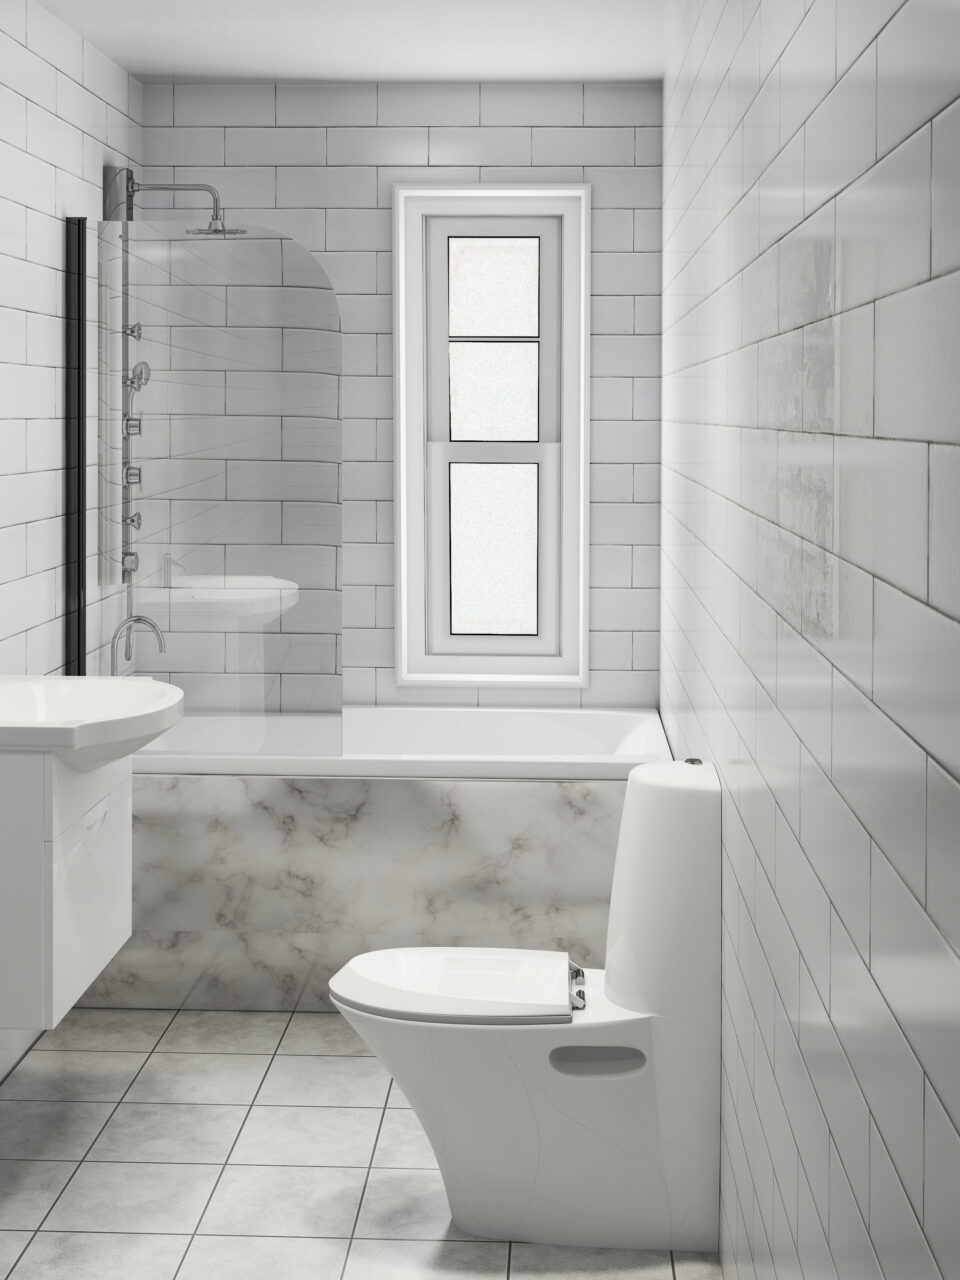 Finish bathrooms and kitchens